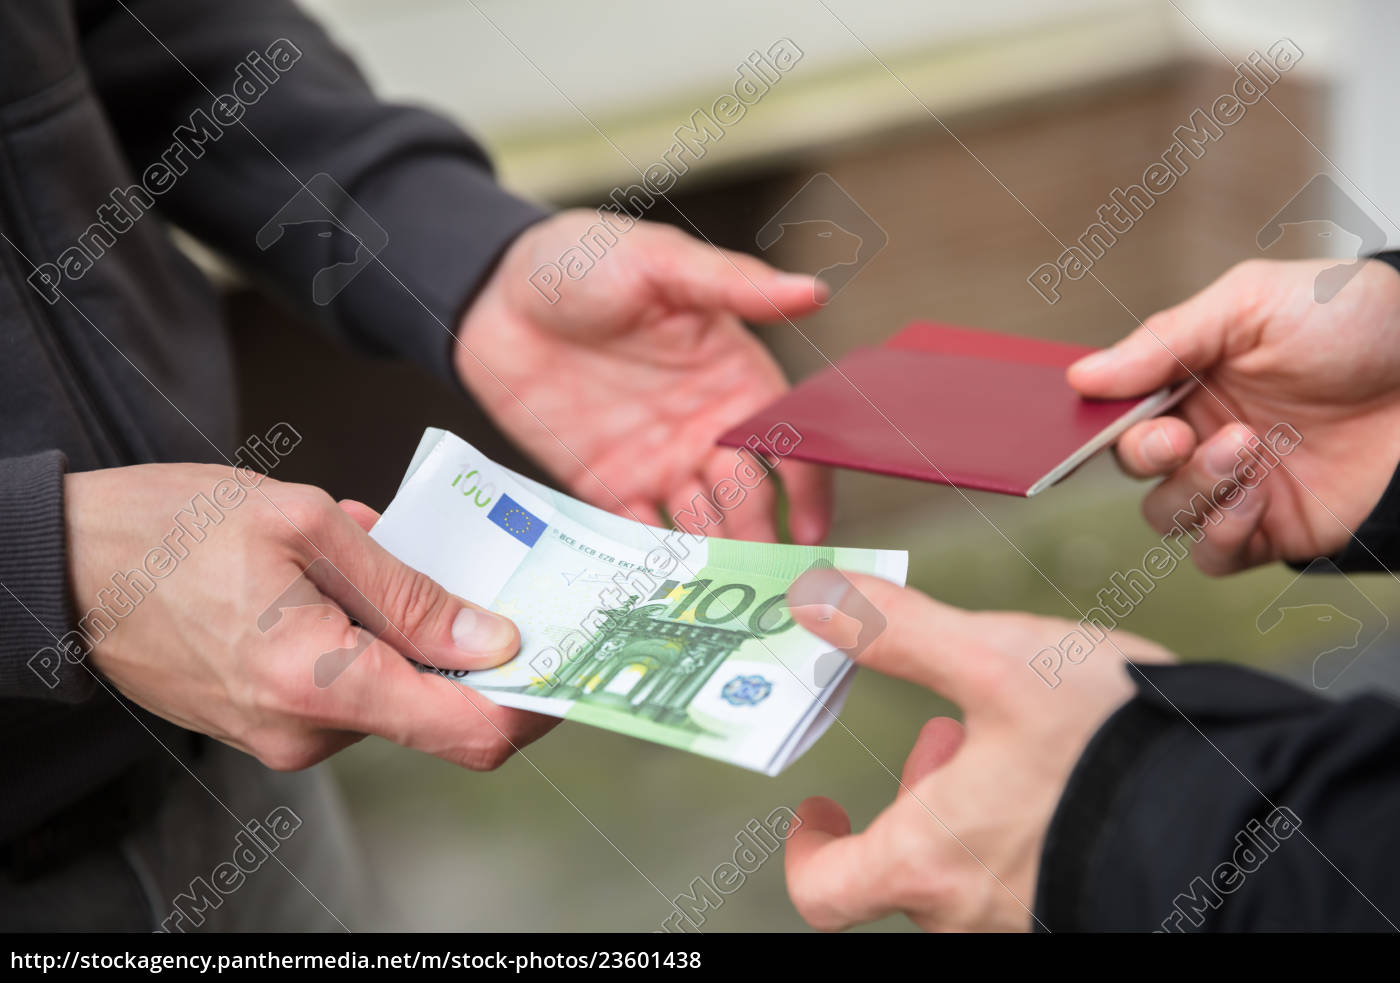 human, hand, buying, illegal, foreign, passport - 23601438